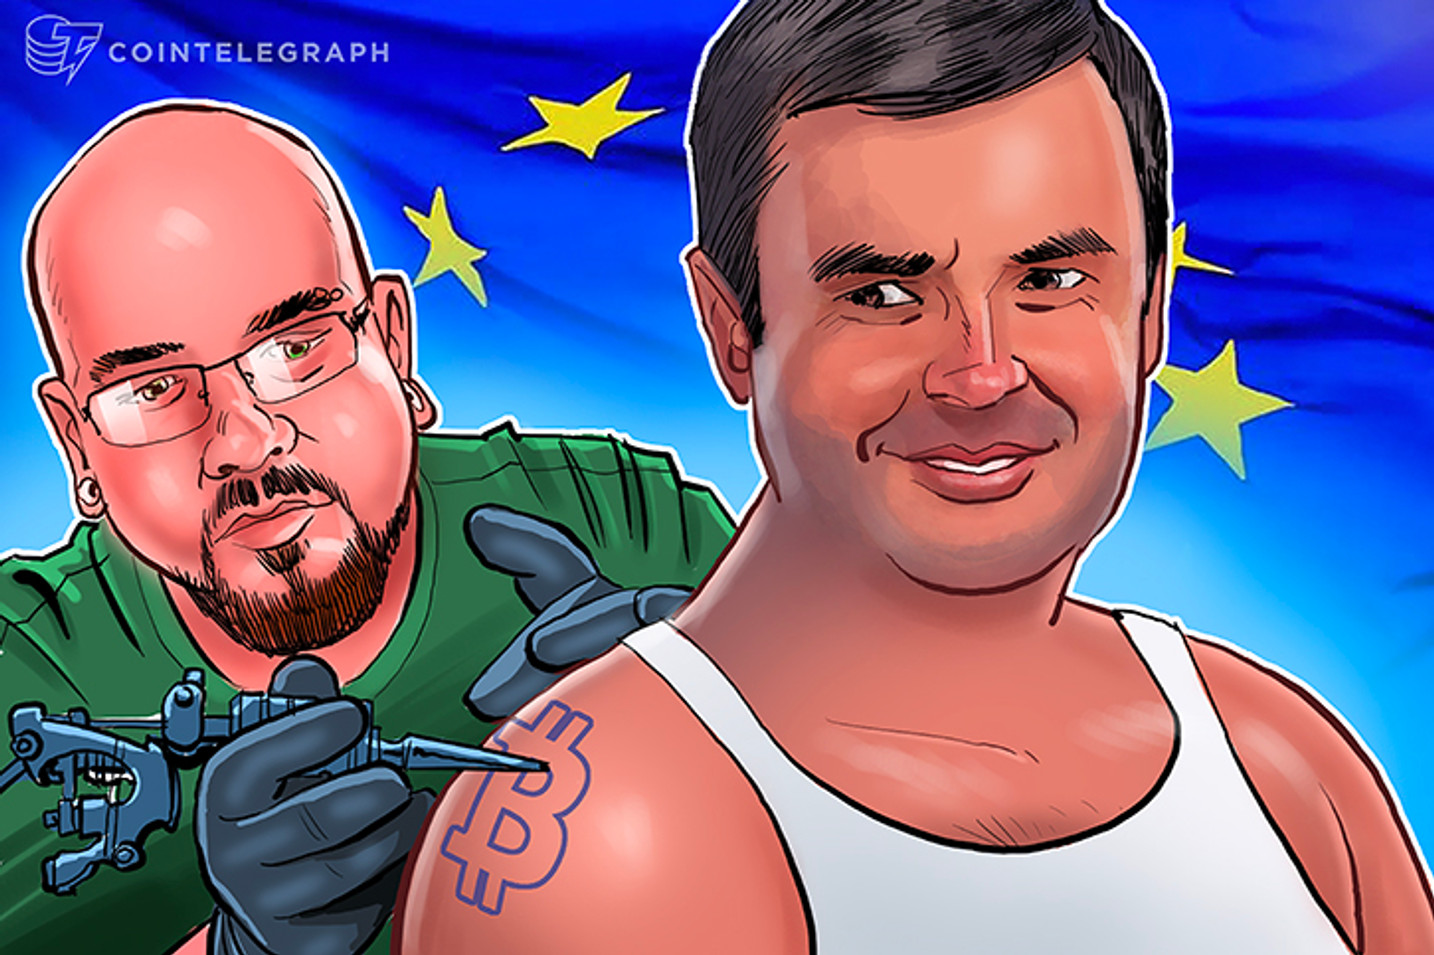 Members of European Parliament Agree Cryptocurrency Has Come to Stay